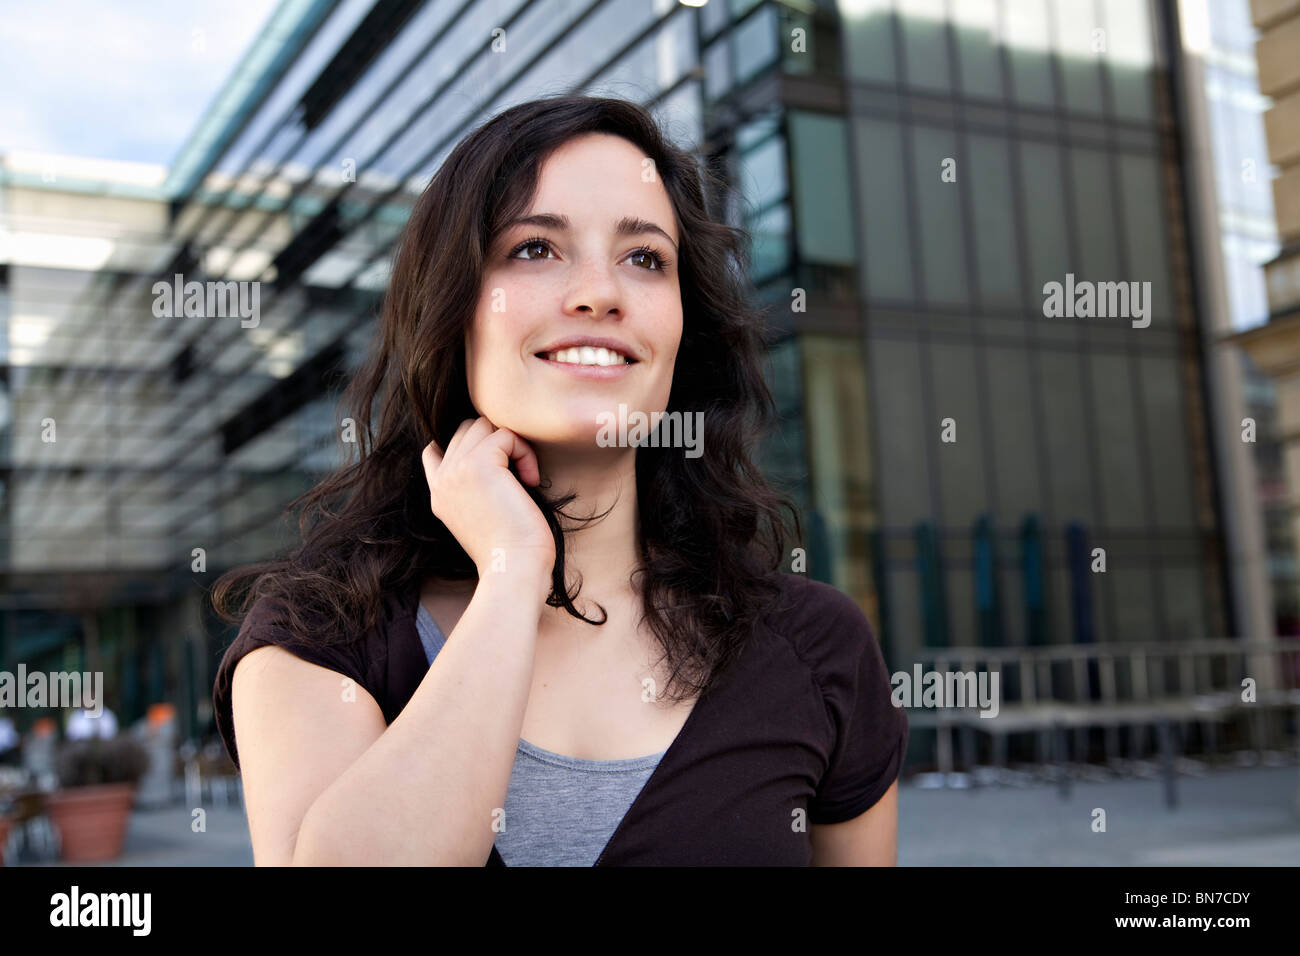 Young woman looking interested - Stock Image